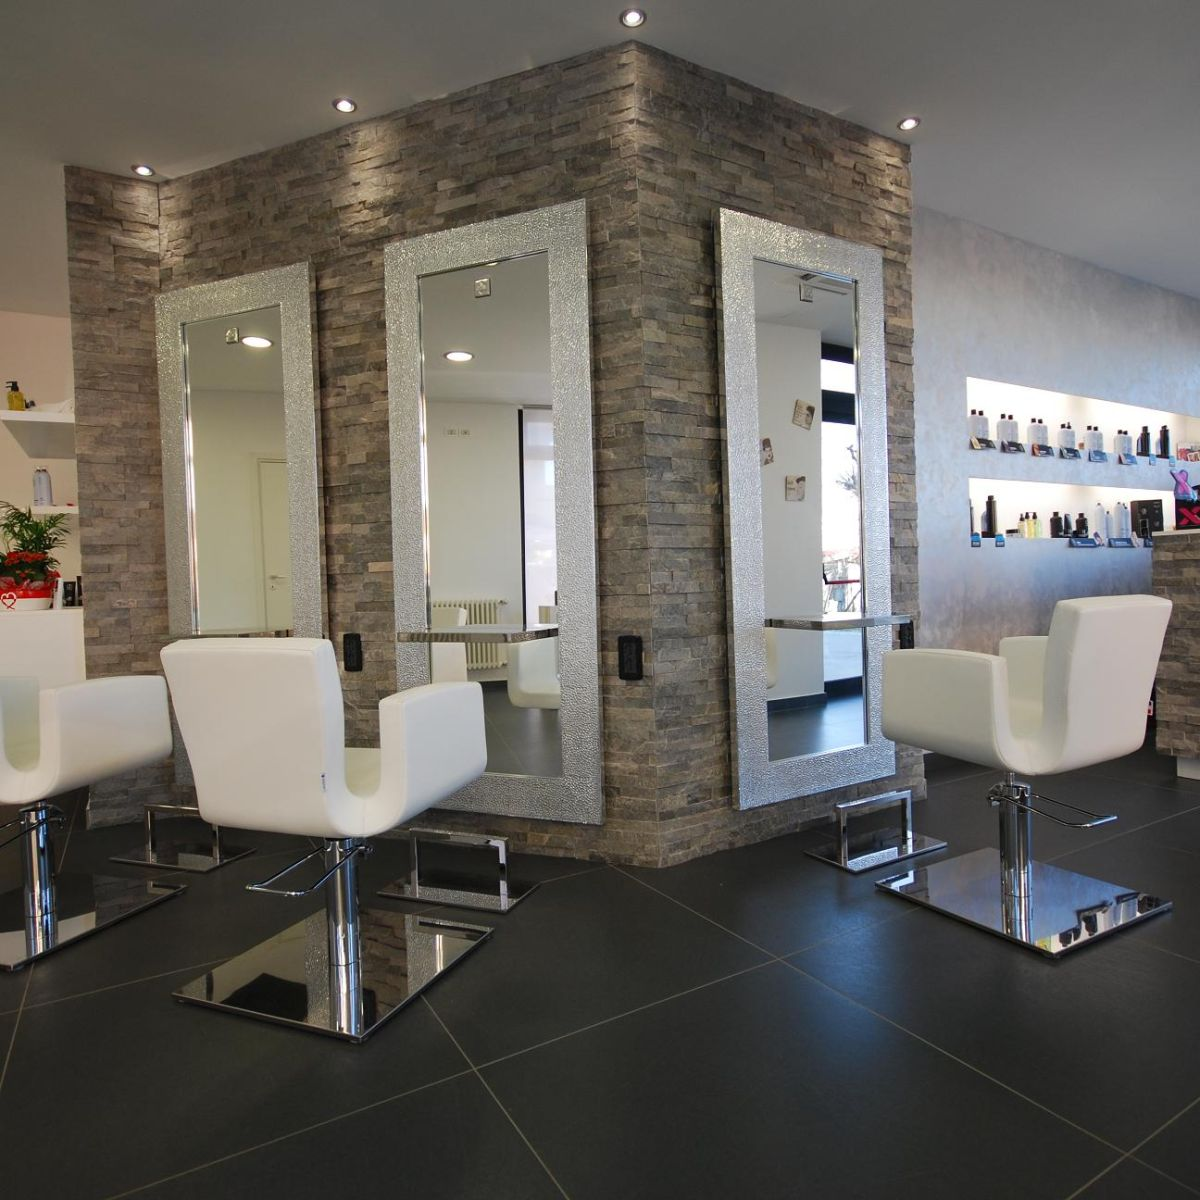 Nelson mobilier hair salon furniture made in france for Salon mobilier